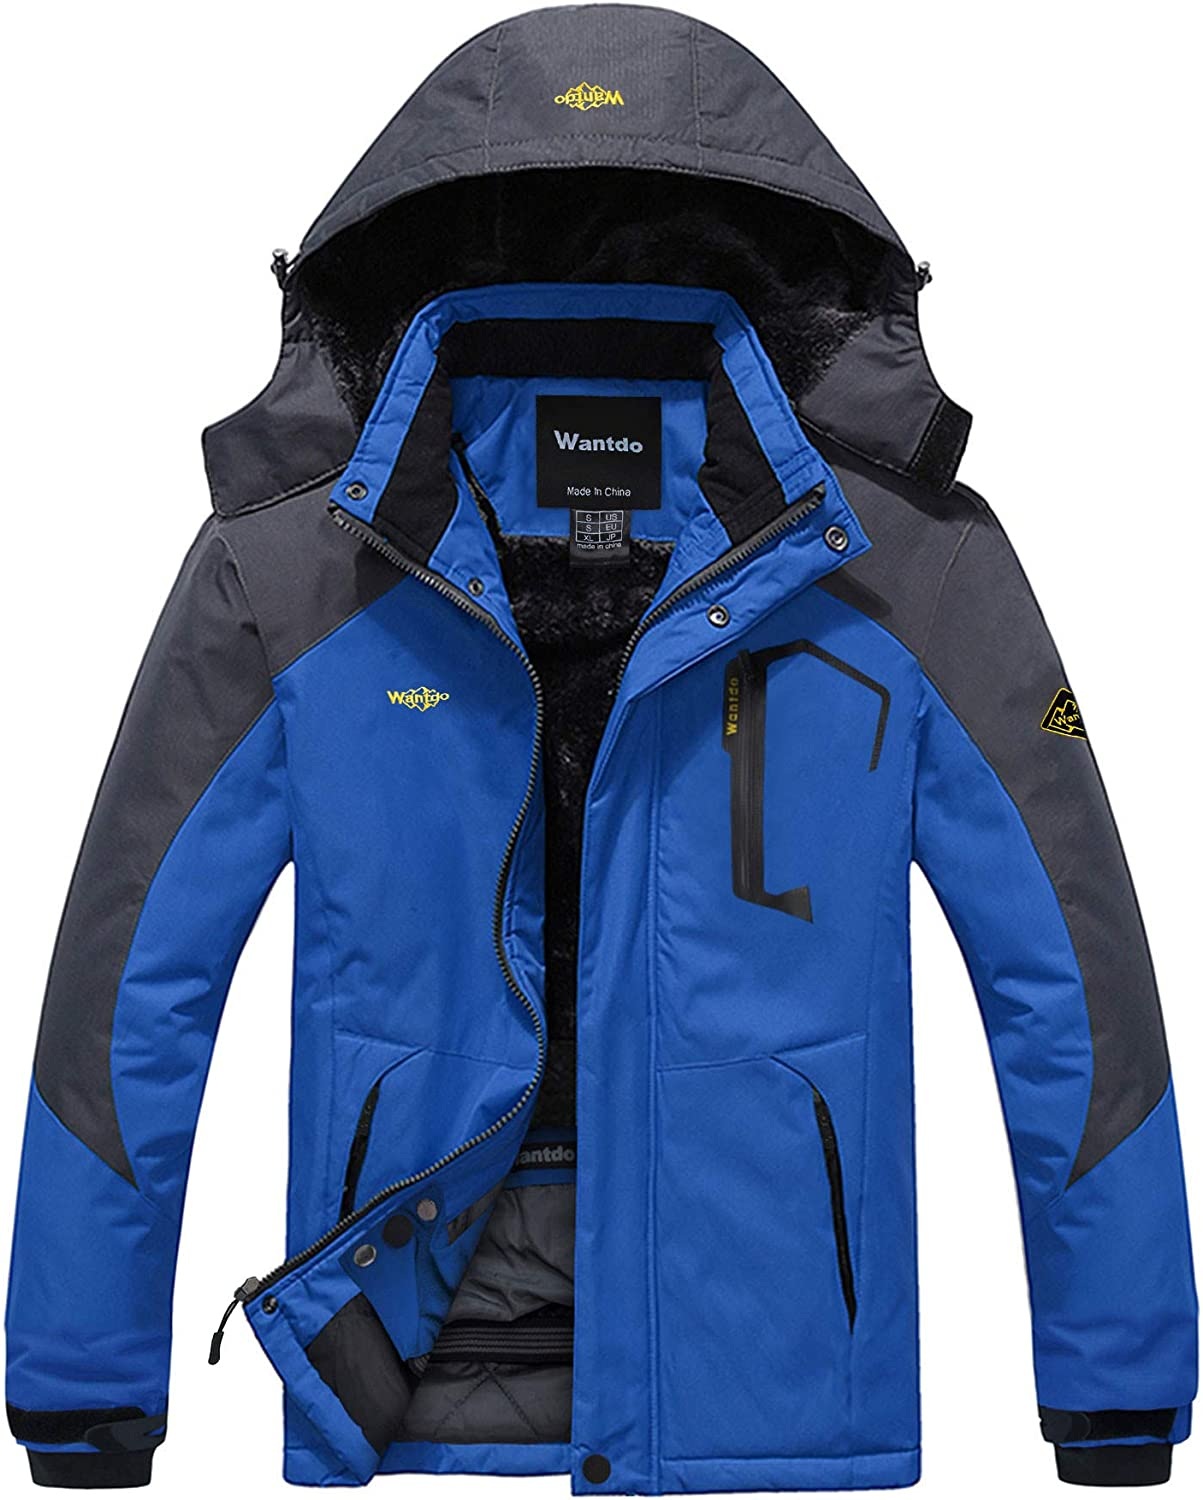 NUOVA Giacca in pile Combat WINDPROOF più freddo Giacca Giacca Vento s-3xl